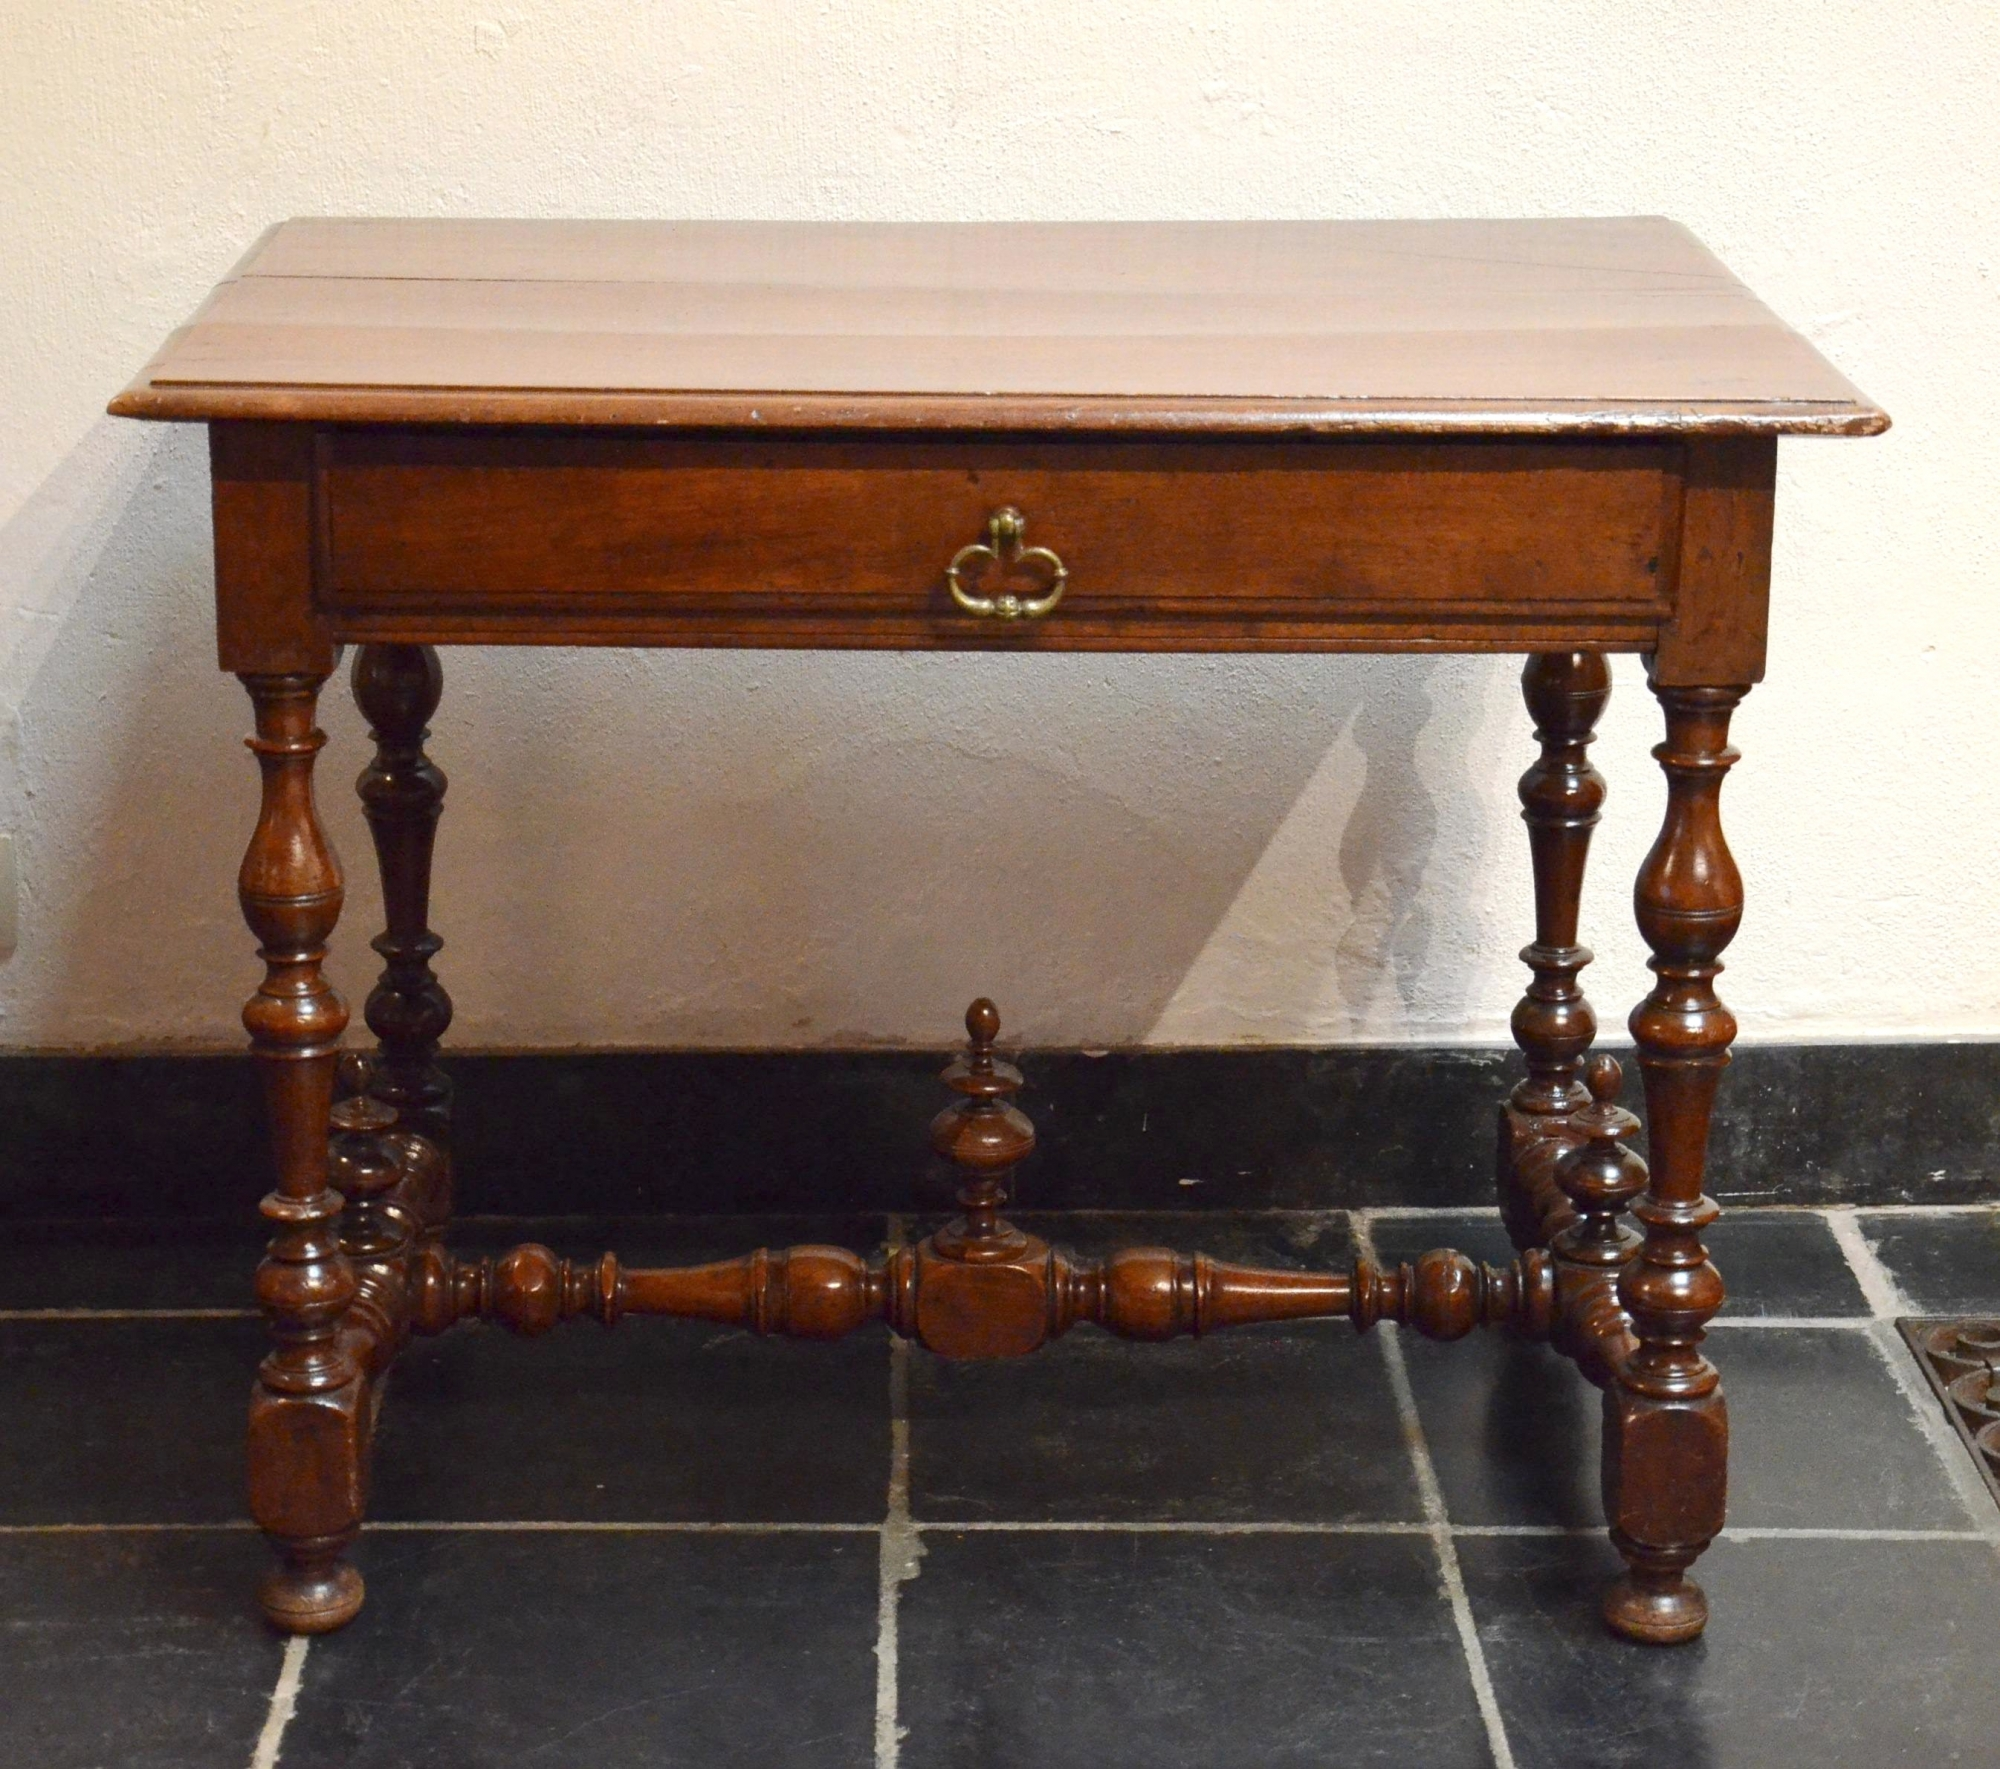 table with drawer france 17th century louis xiii. Black Bedroom Furniture Sets. Home Design Ideas